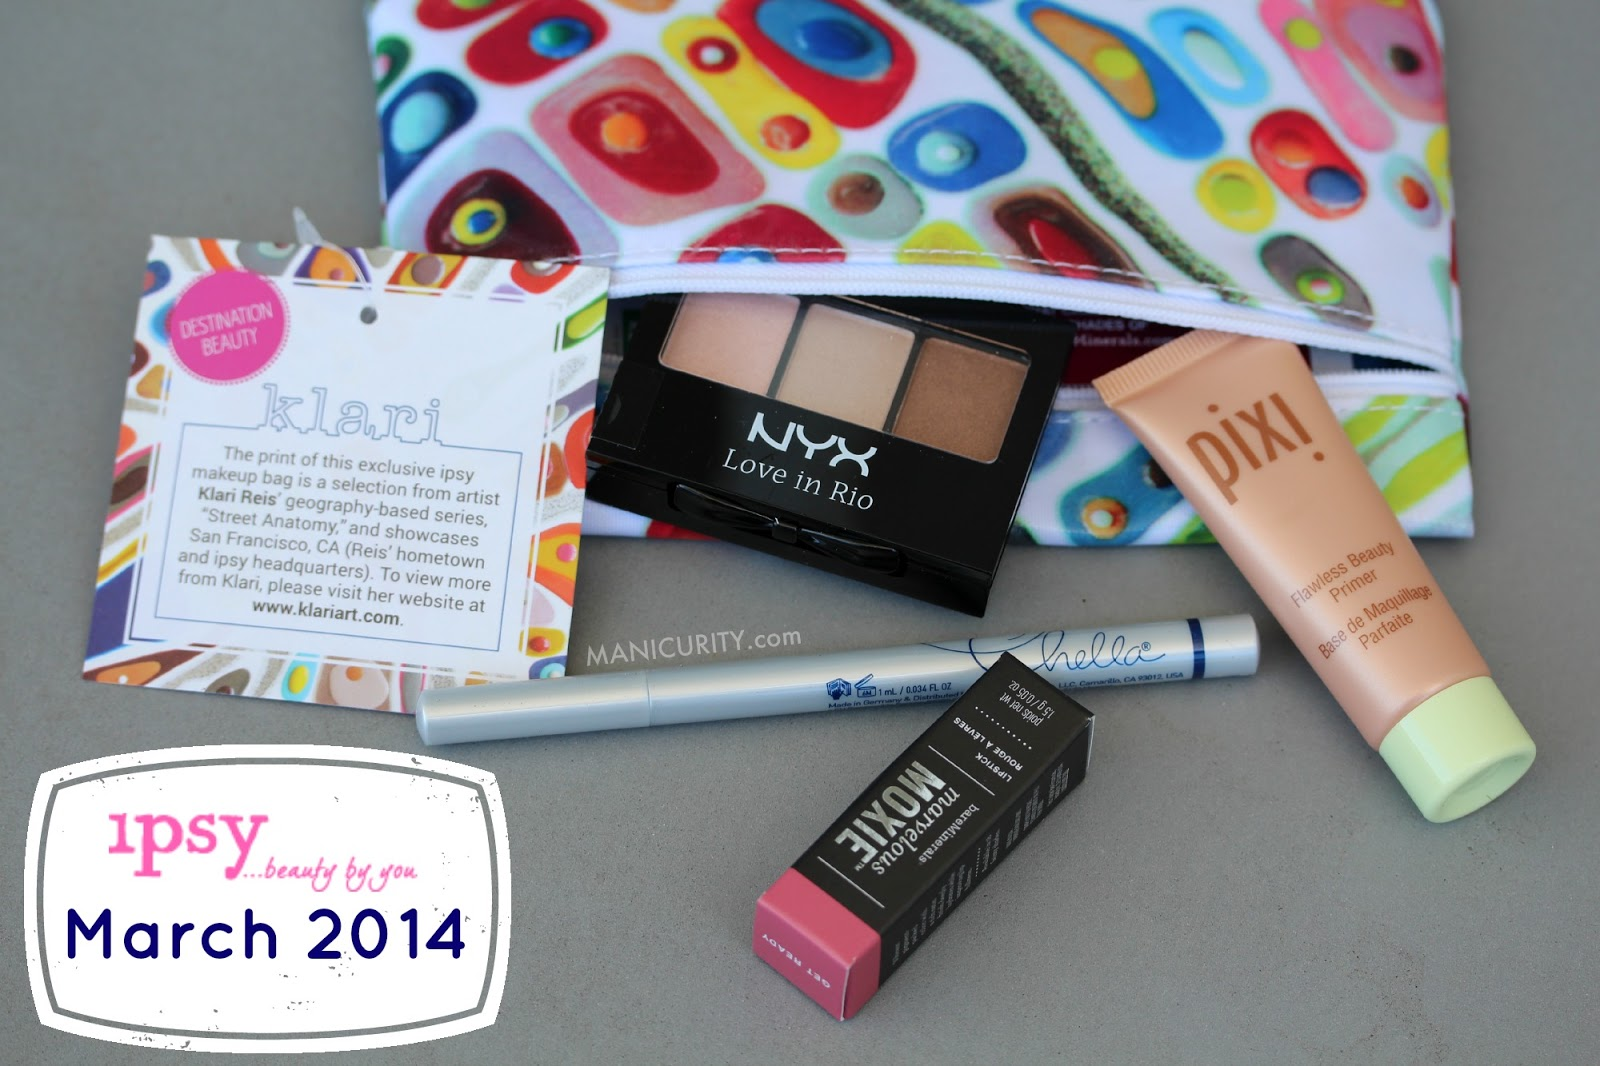 Ipsy Glam Bag March 2014 - Destination Beauty with Pixi Flawless Primer, Nyx Love in Rio eyeshadow trio in LIR06 Segredos de Giselle, Chella Eyeliner pen in Indigo Blue, bareMinerals Moxie Lipstick Get Ready swatches, review | Manicurity.com